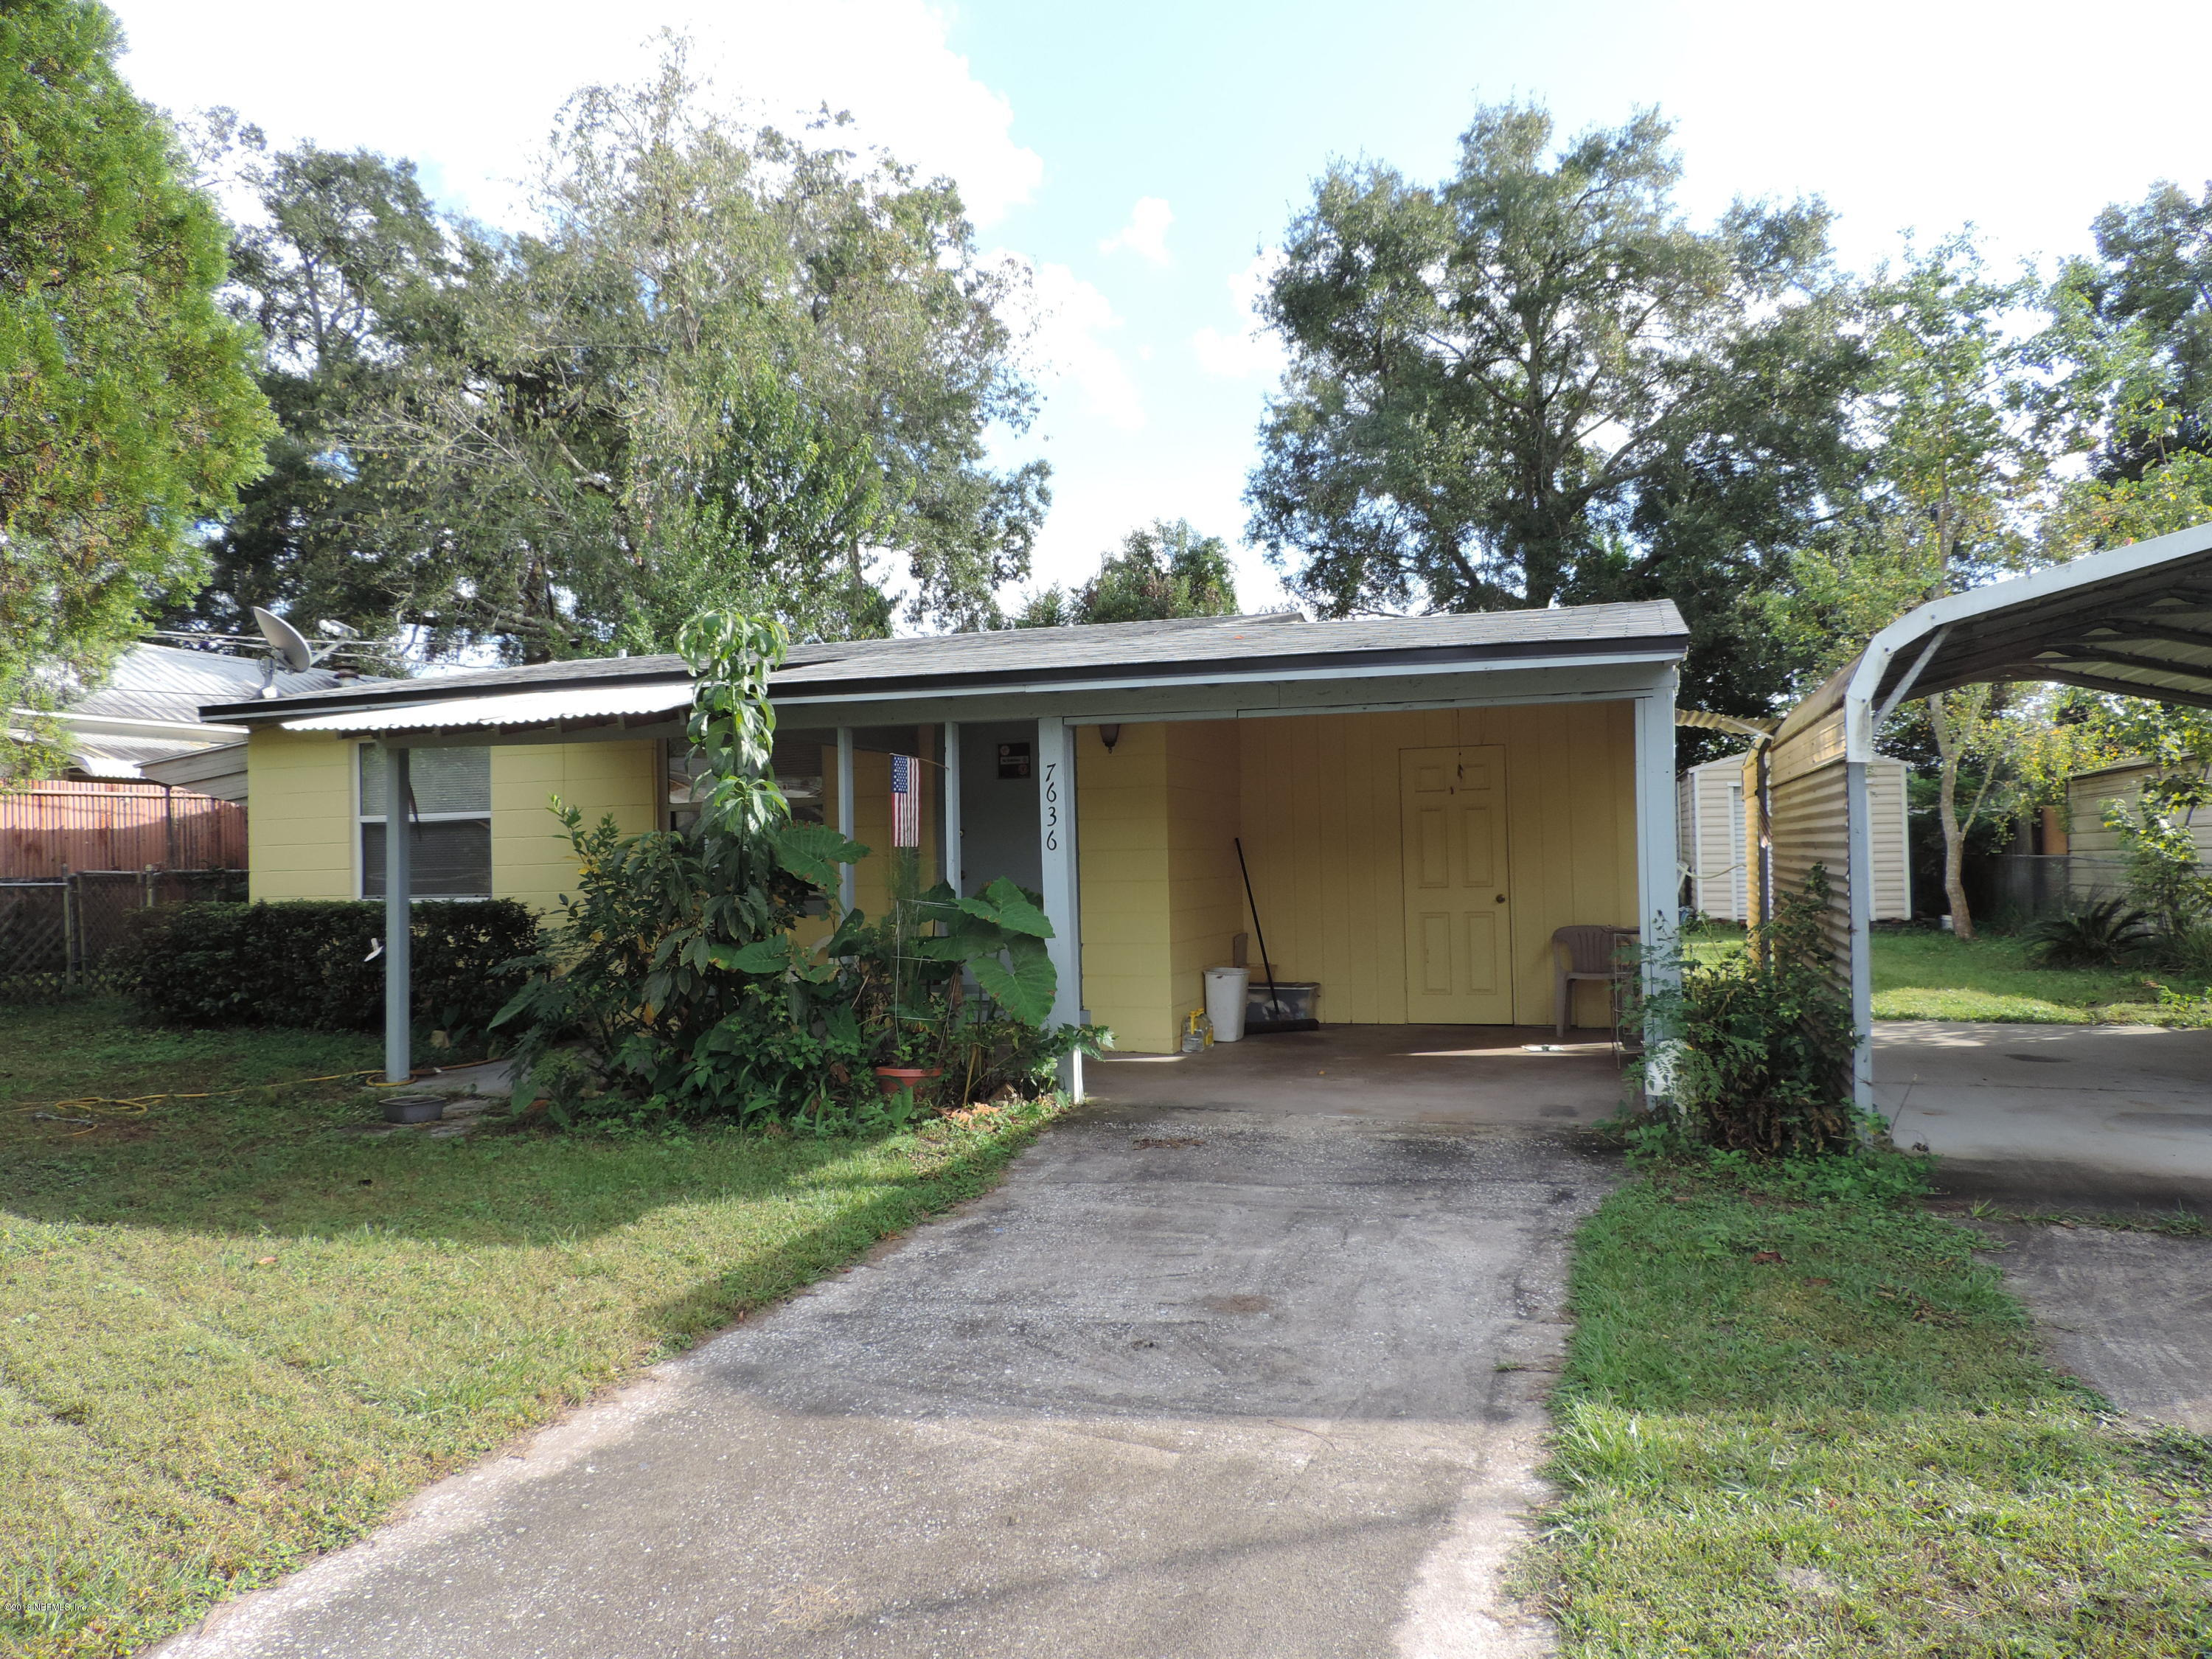 7636 BERRY, JACKSONVILLE, FLORIDA 32211, 2 Bedrooms Bedrooms, ,1 BathroomBathrooms,Residential - single family,For sale,BERRY,966757